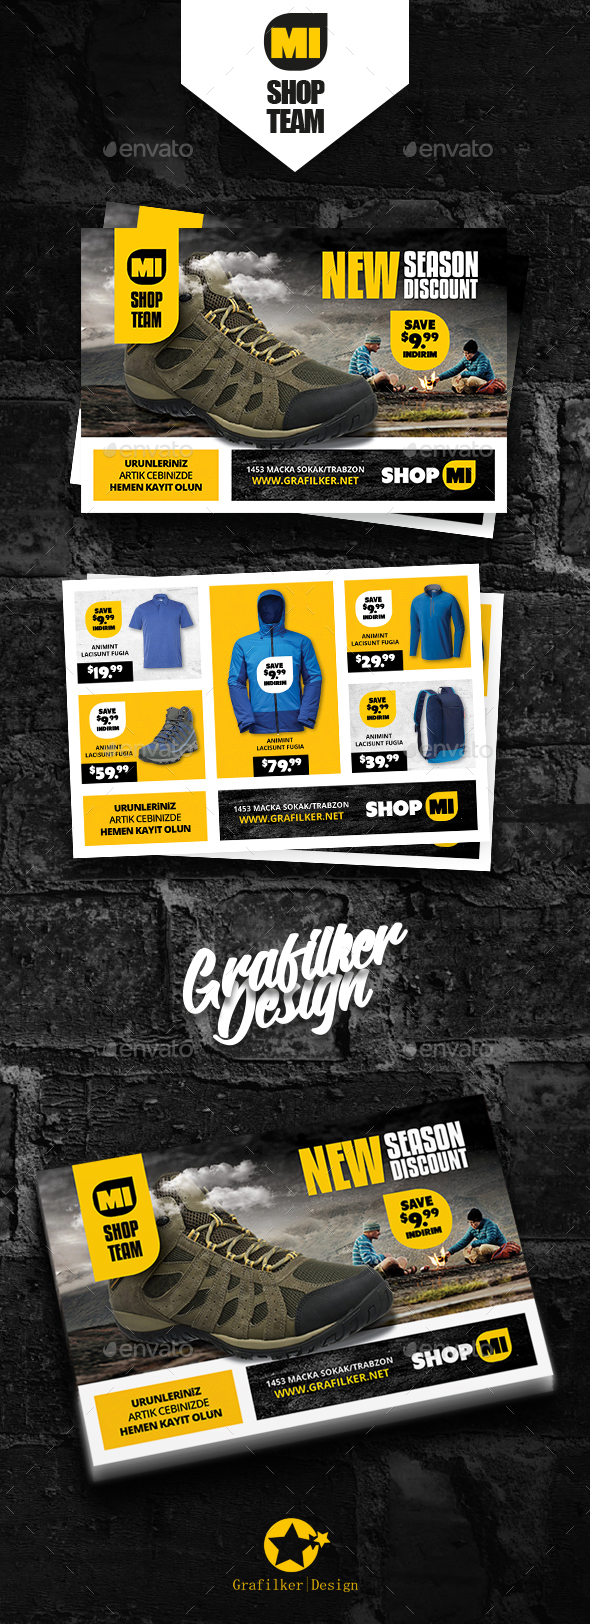 Shopping Product Postcard Templates - Cards & Invites Print Templates